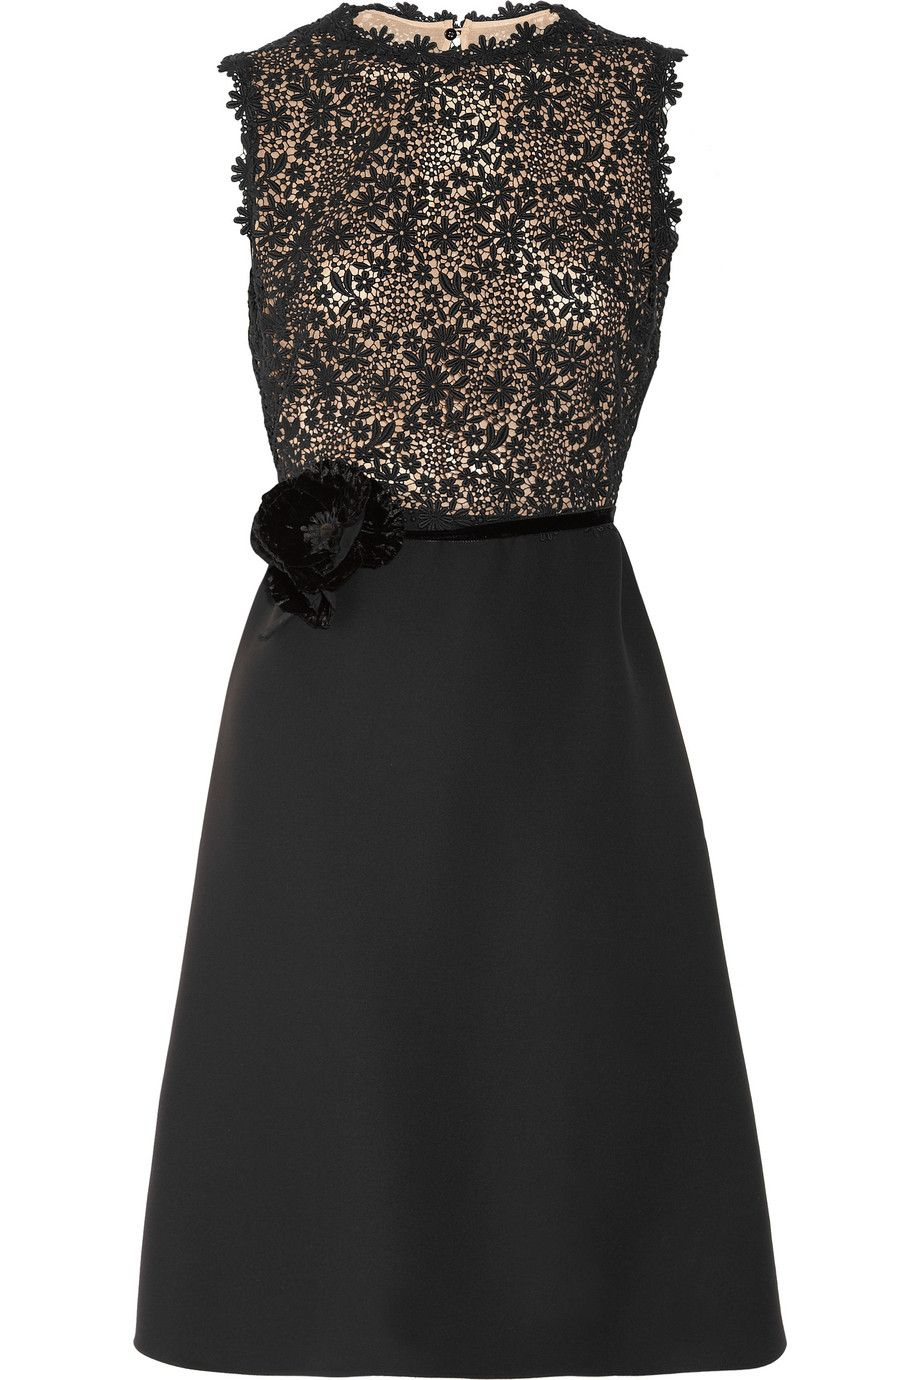 VALENTINO  Silk-crepe and lace dress  $2,890